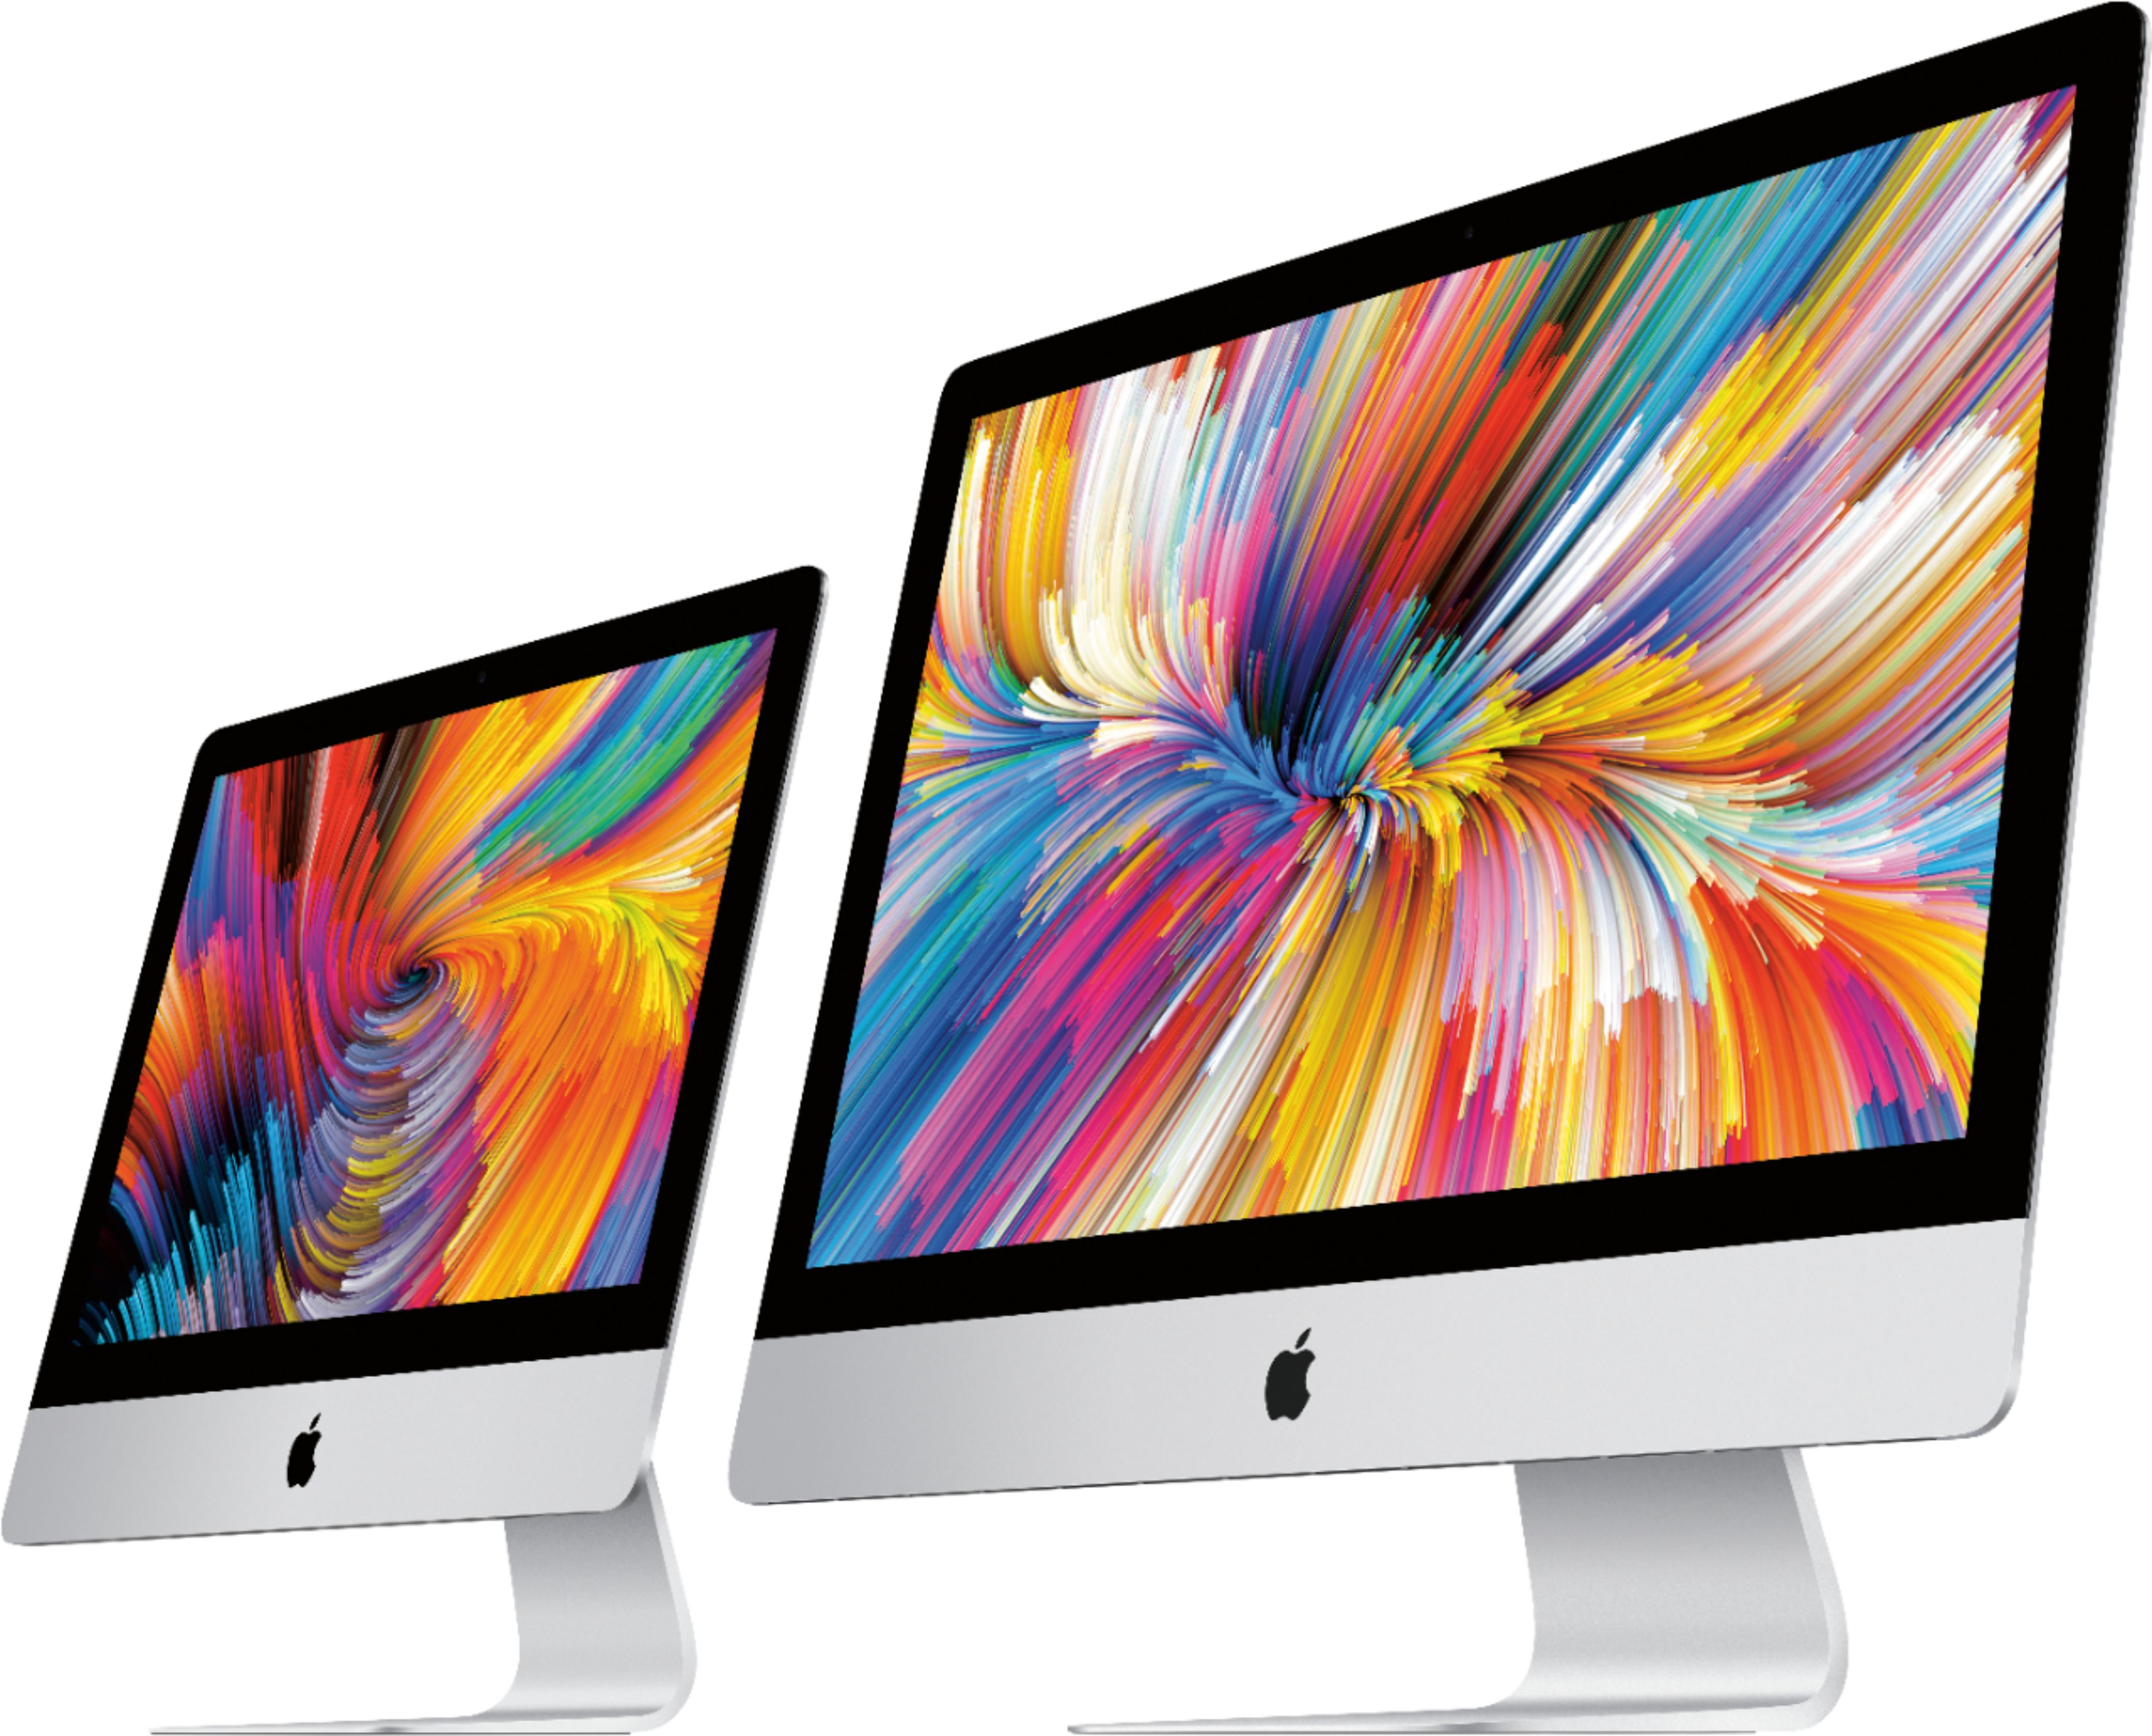 "Alt View Zoom 14. Apple - 27"" iMac® with Retina 5k display - Intel Core i5 (3.1GHz) - 8GB Memory - 1TB Fusion Drive - Silver."